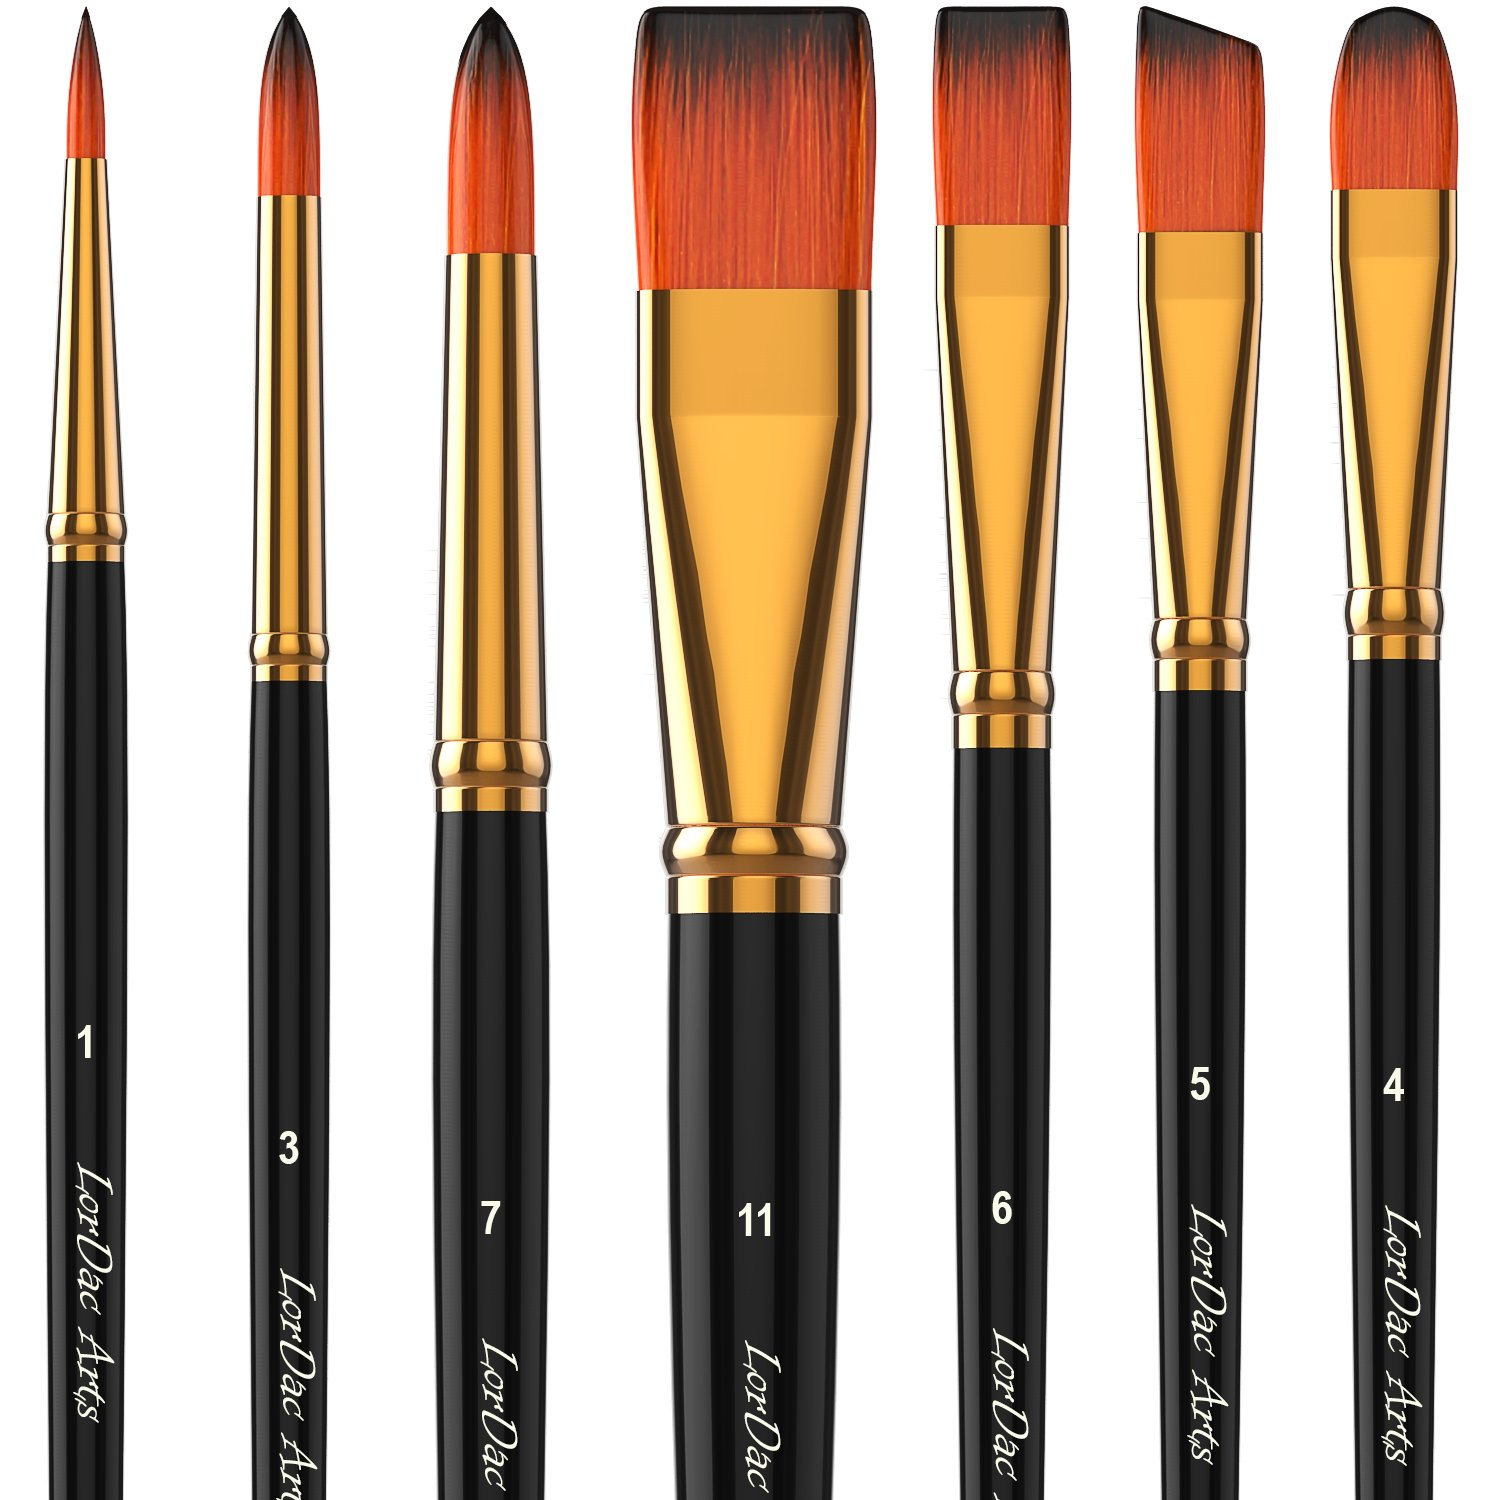 beautiful Paint The Night Paintbrush Part - 17: Amazon.com: LorDac Arts Paint Brush Set - 7 Artist Brushes for Acrylic,  Oil, Watercolor, Gouache and Plein Air Painting - Short Handles -  Lightweight ...